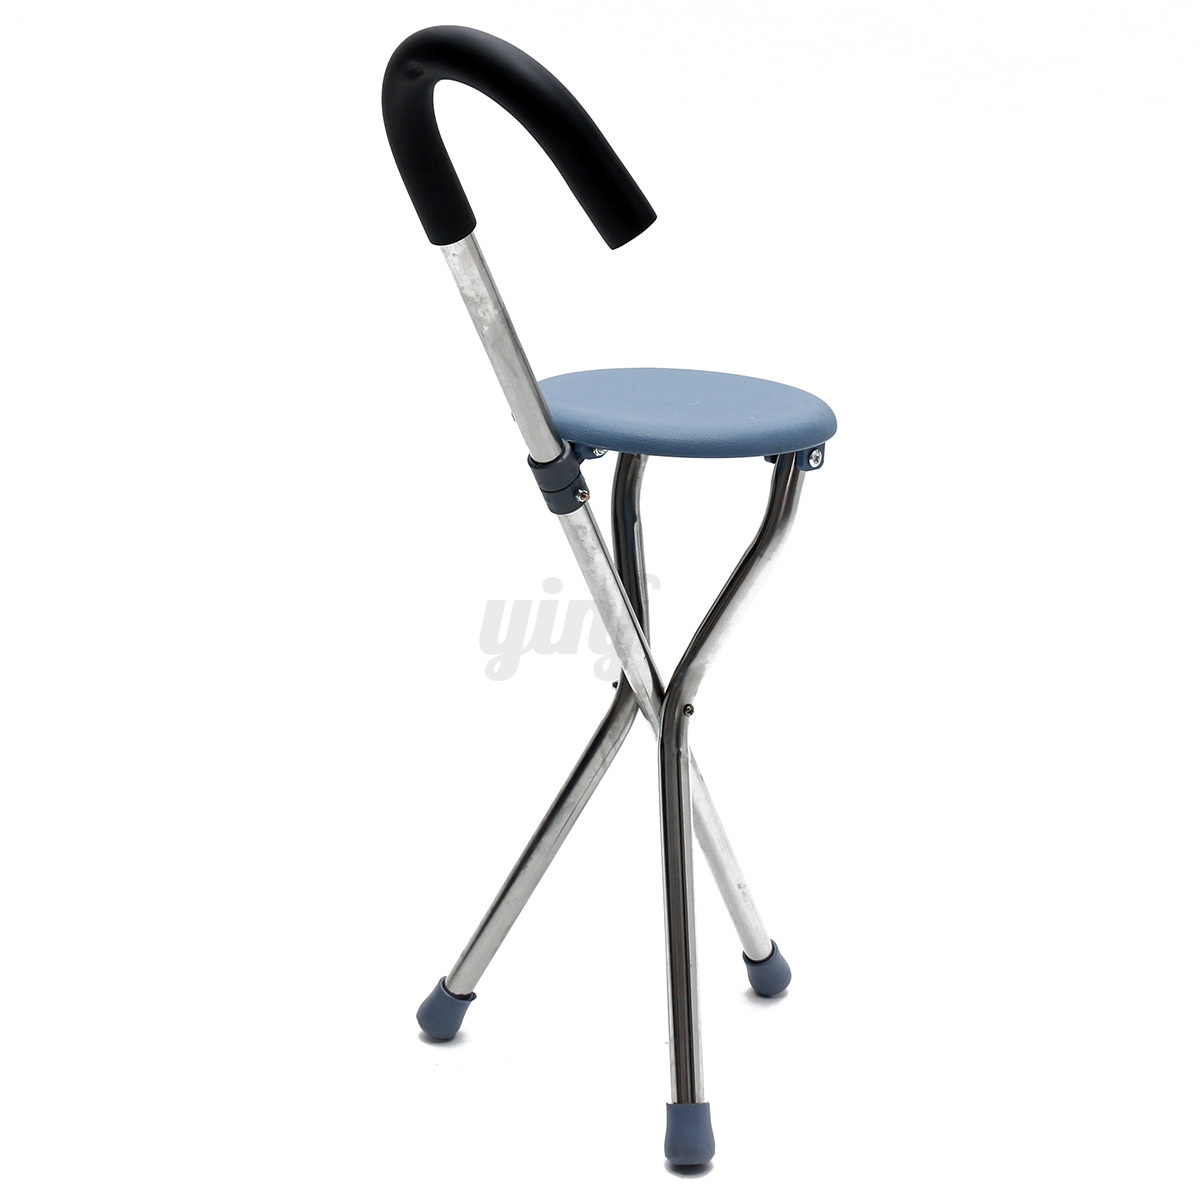 walking cane seat chairs swing chair stand diy lightweight folding tripod hiking portable